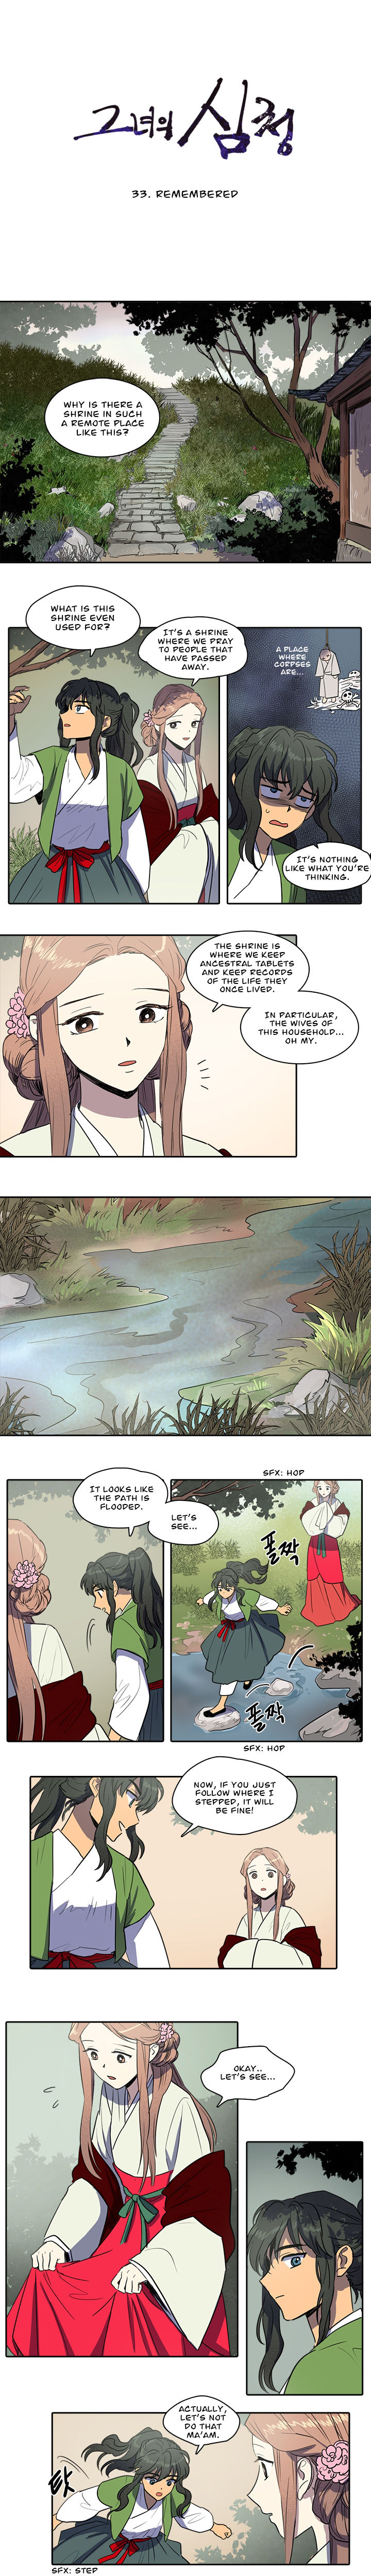 Her Shim Cheong 33 Page 1